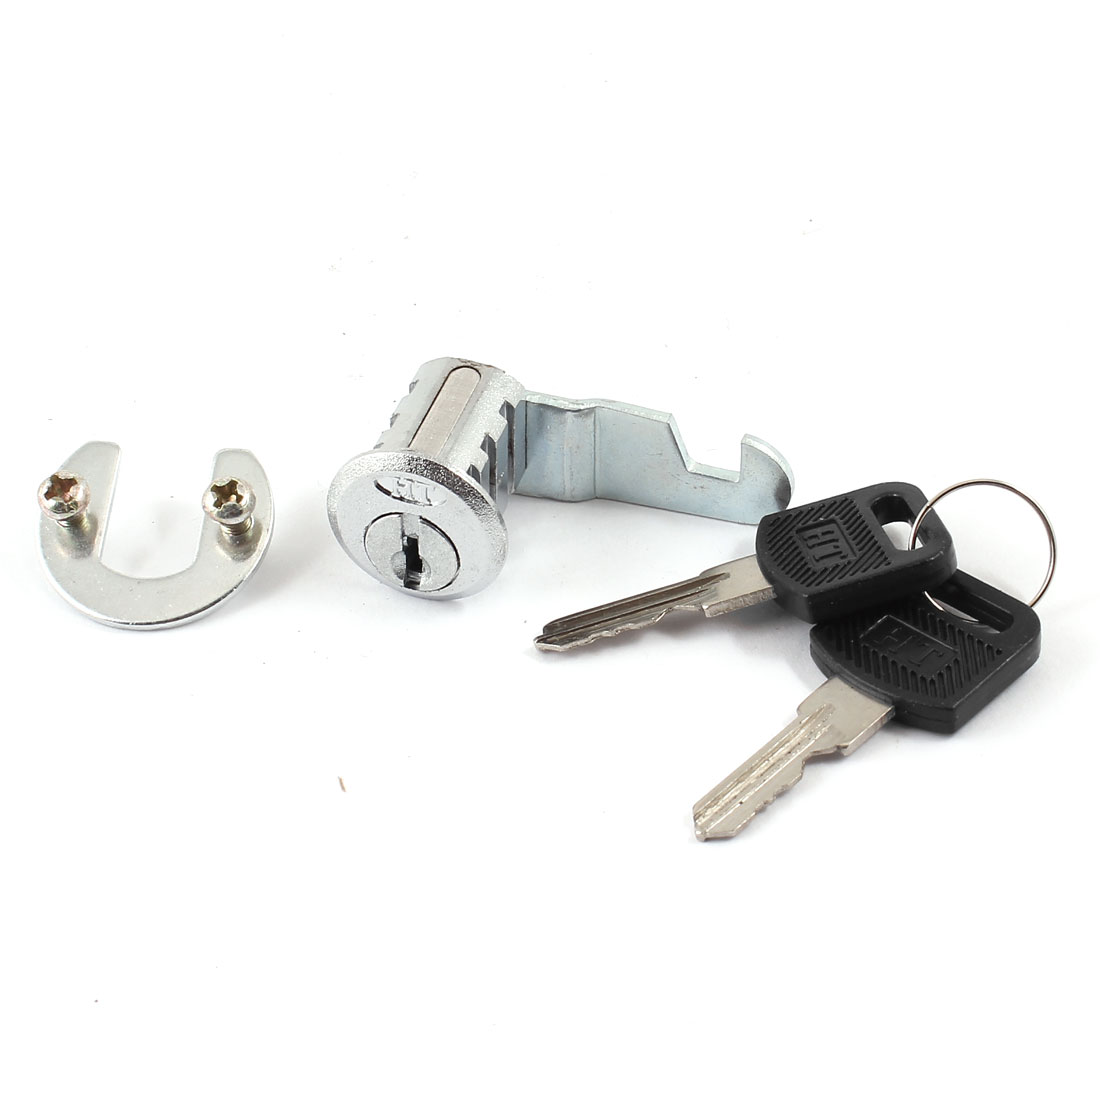 Garderobe Cabinet Security Locking Cylinder Cam Lock w 2 Keys